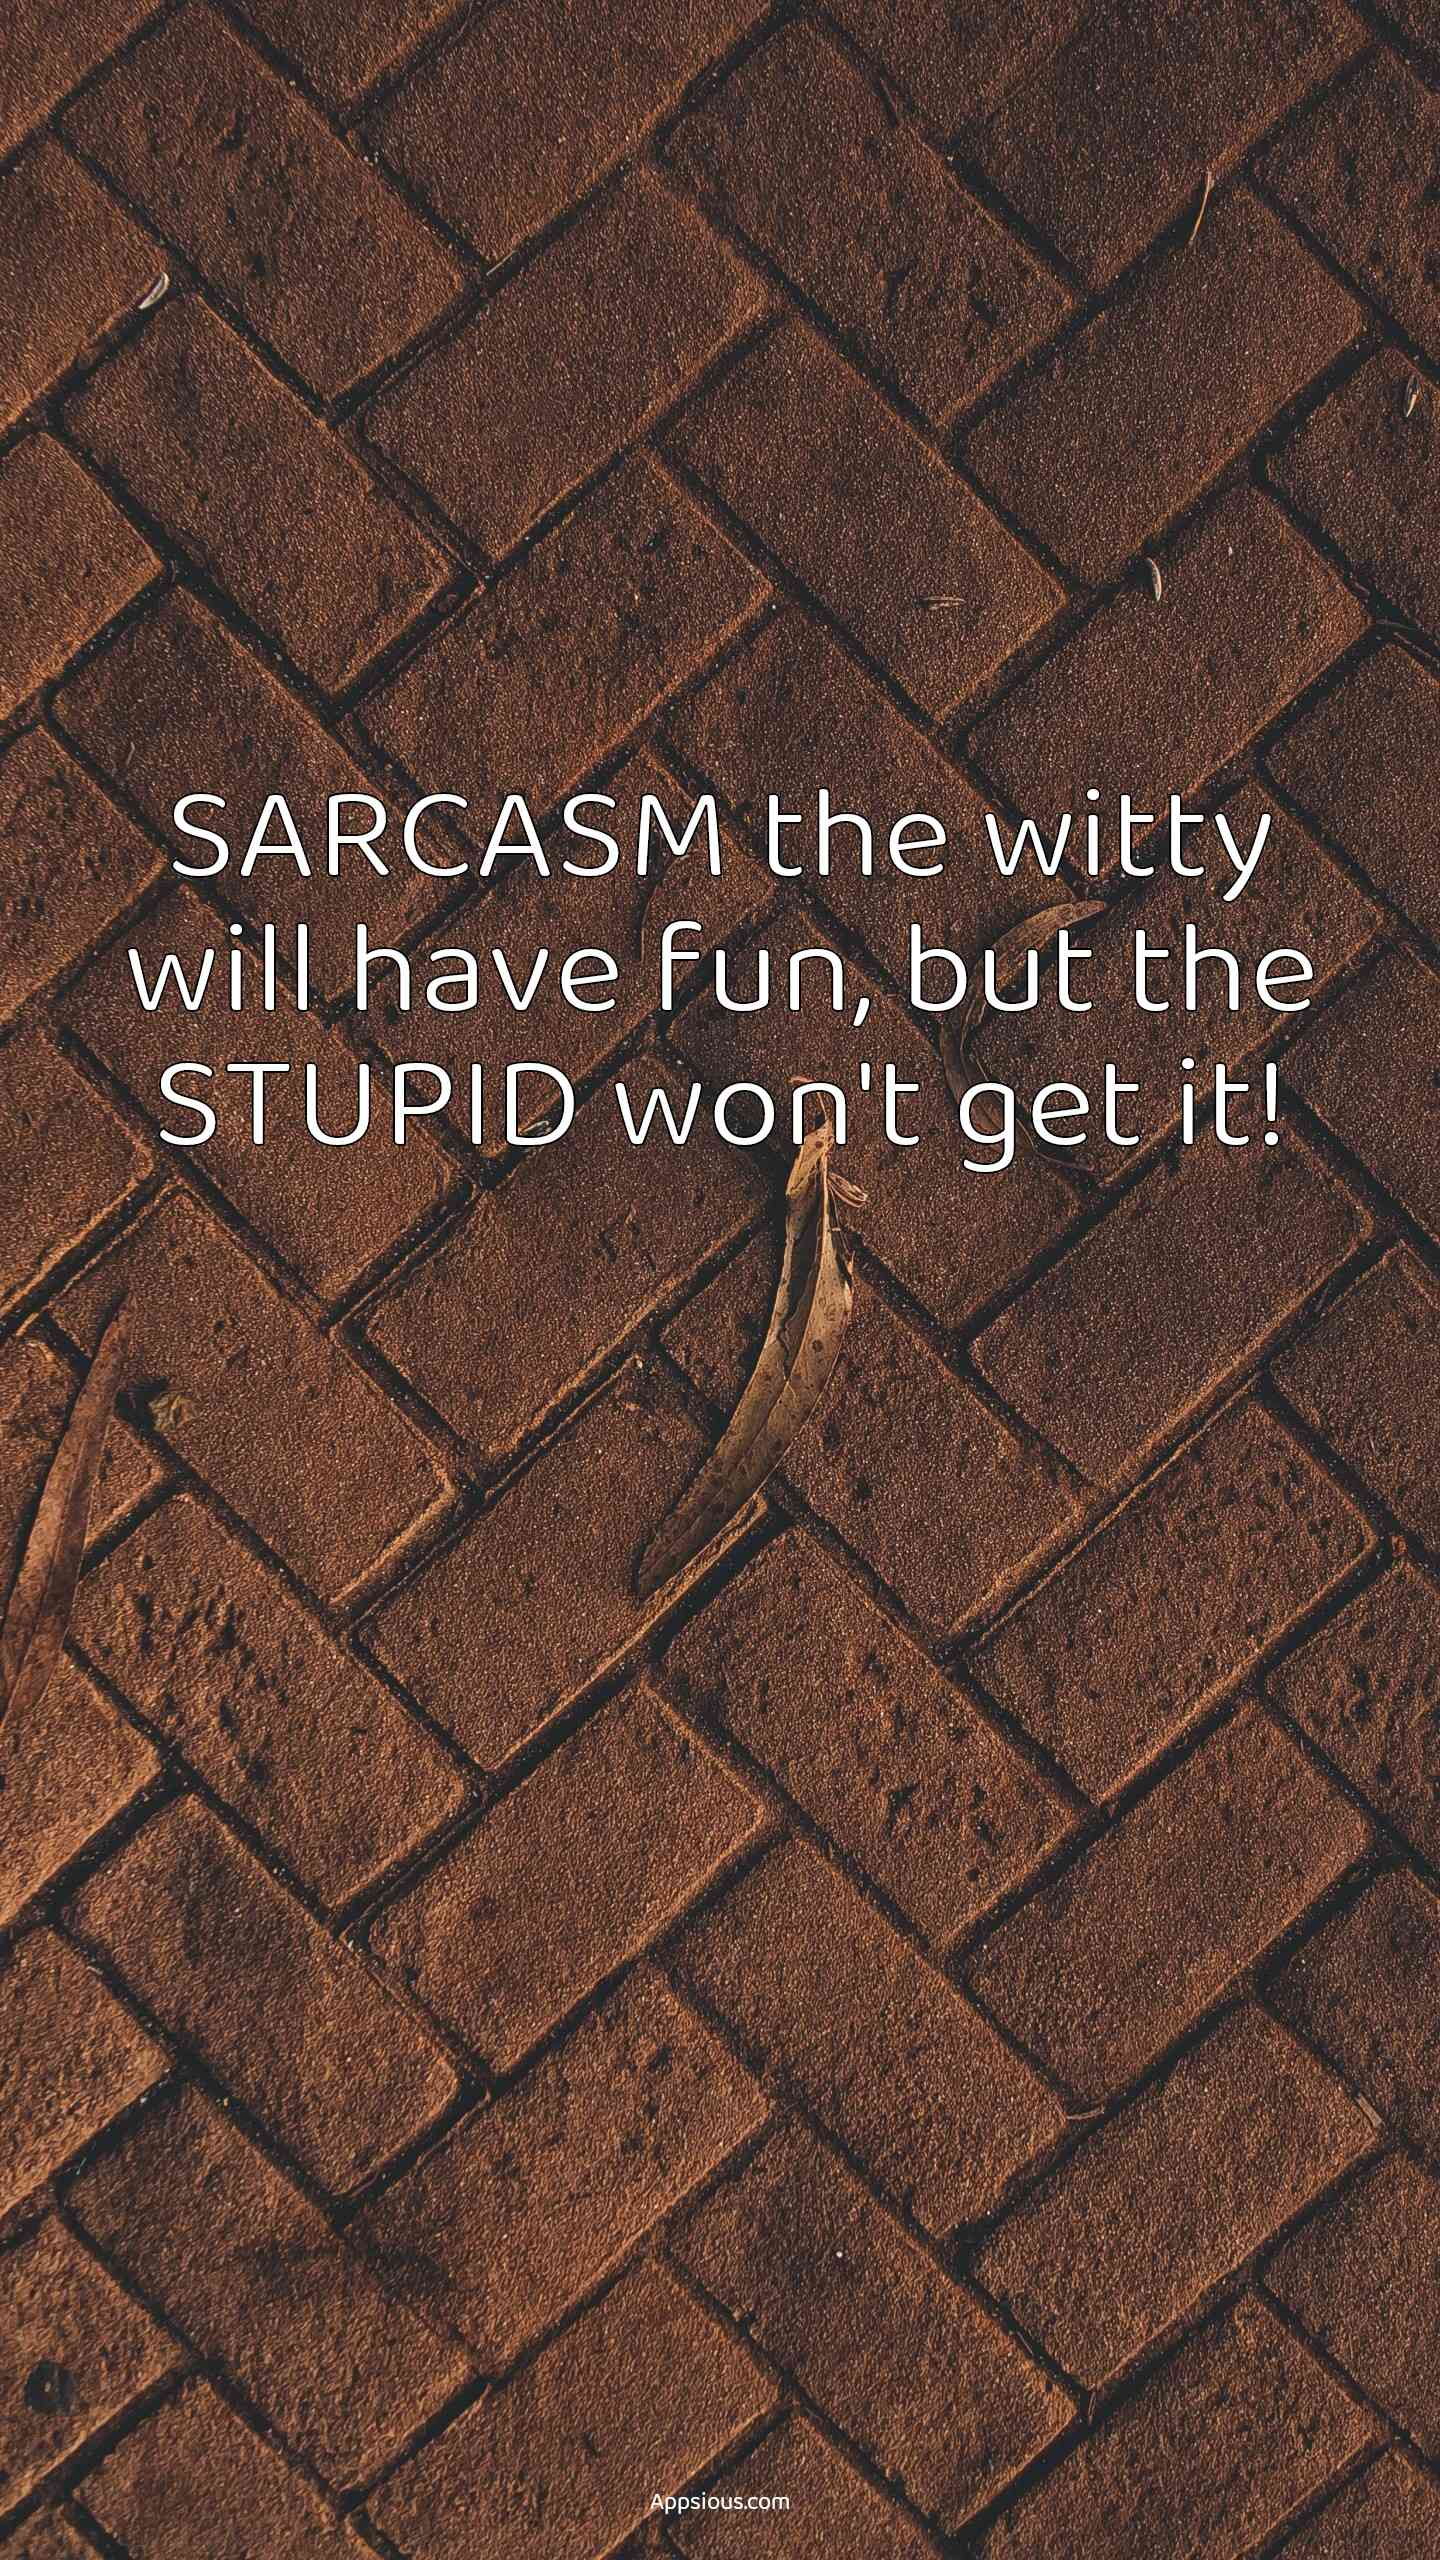 SARCASM the witty will have fun, but the STUPID won't get it!